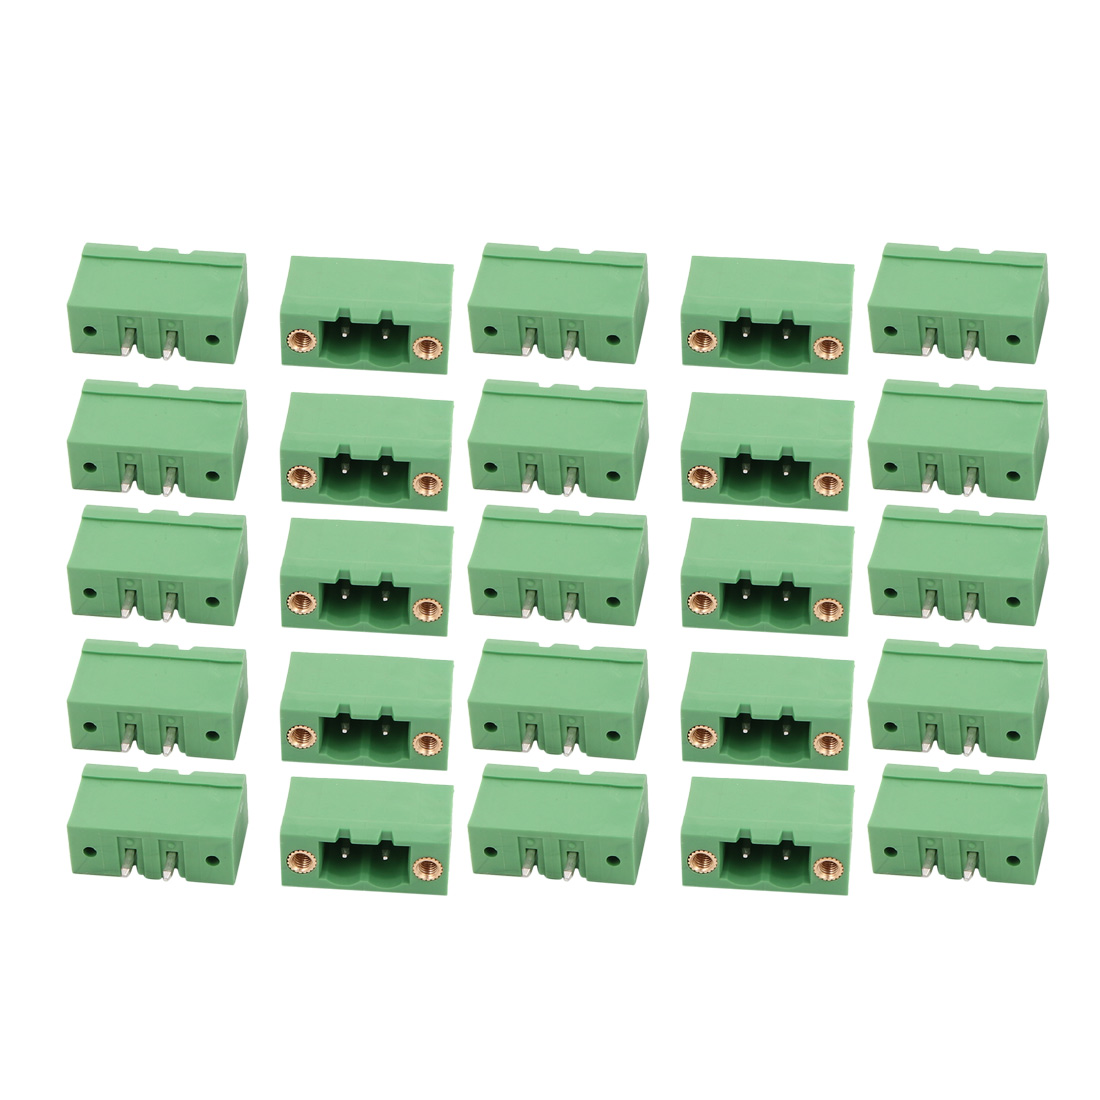 25Pcs AC300V 17.5A 5.08mm Pitch 2P Terminal Block Wire Connection f PCB Mounting